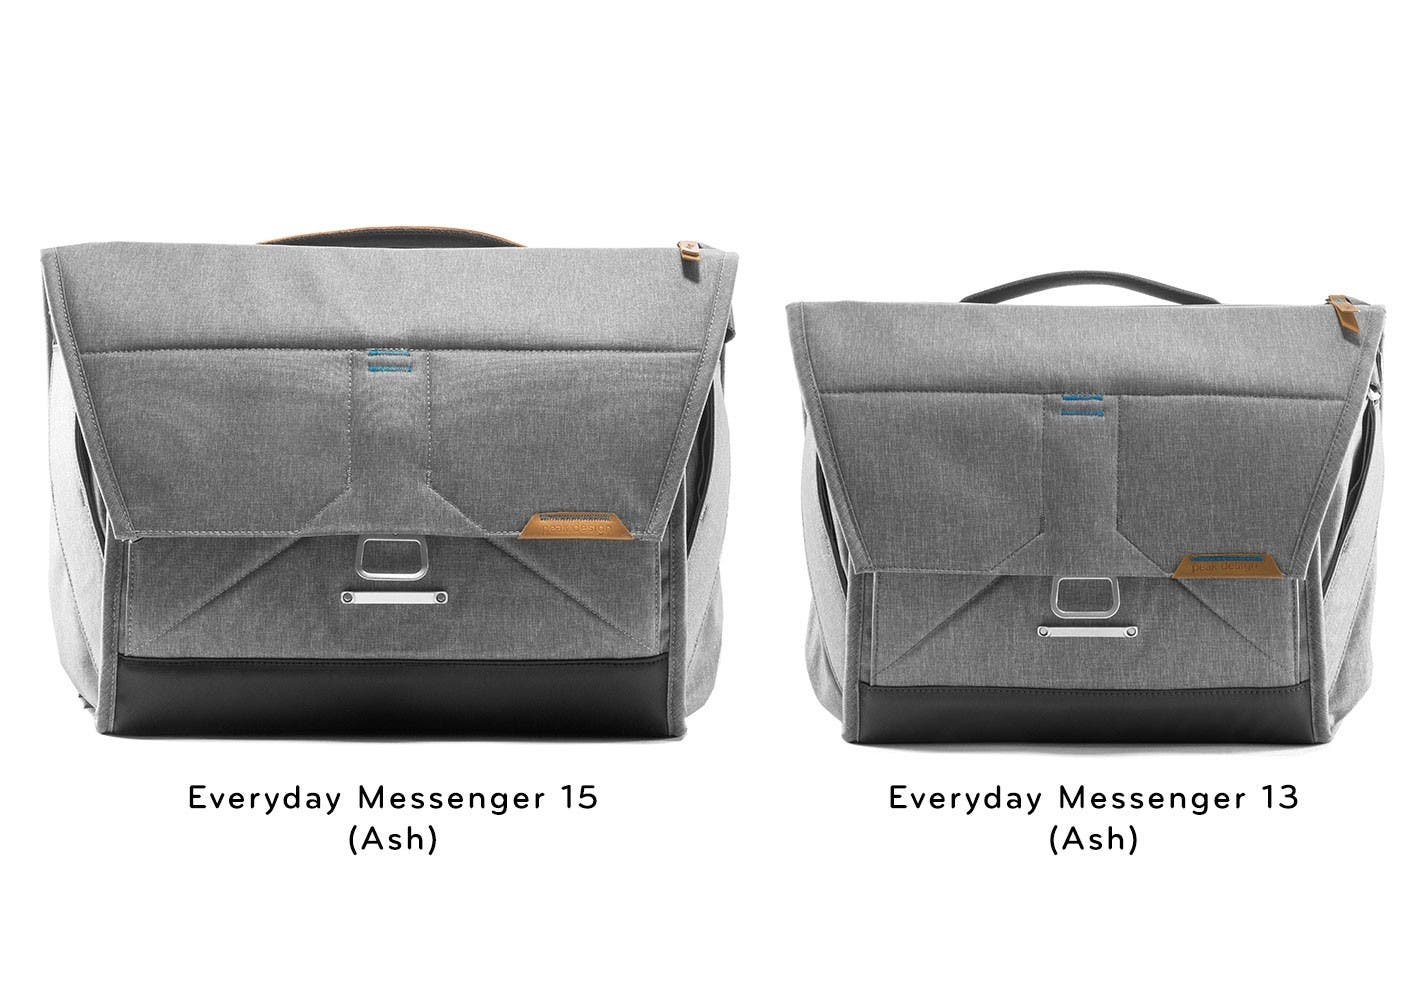 Peak Design Announces Improvements to the Everyday Messenger V2